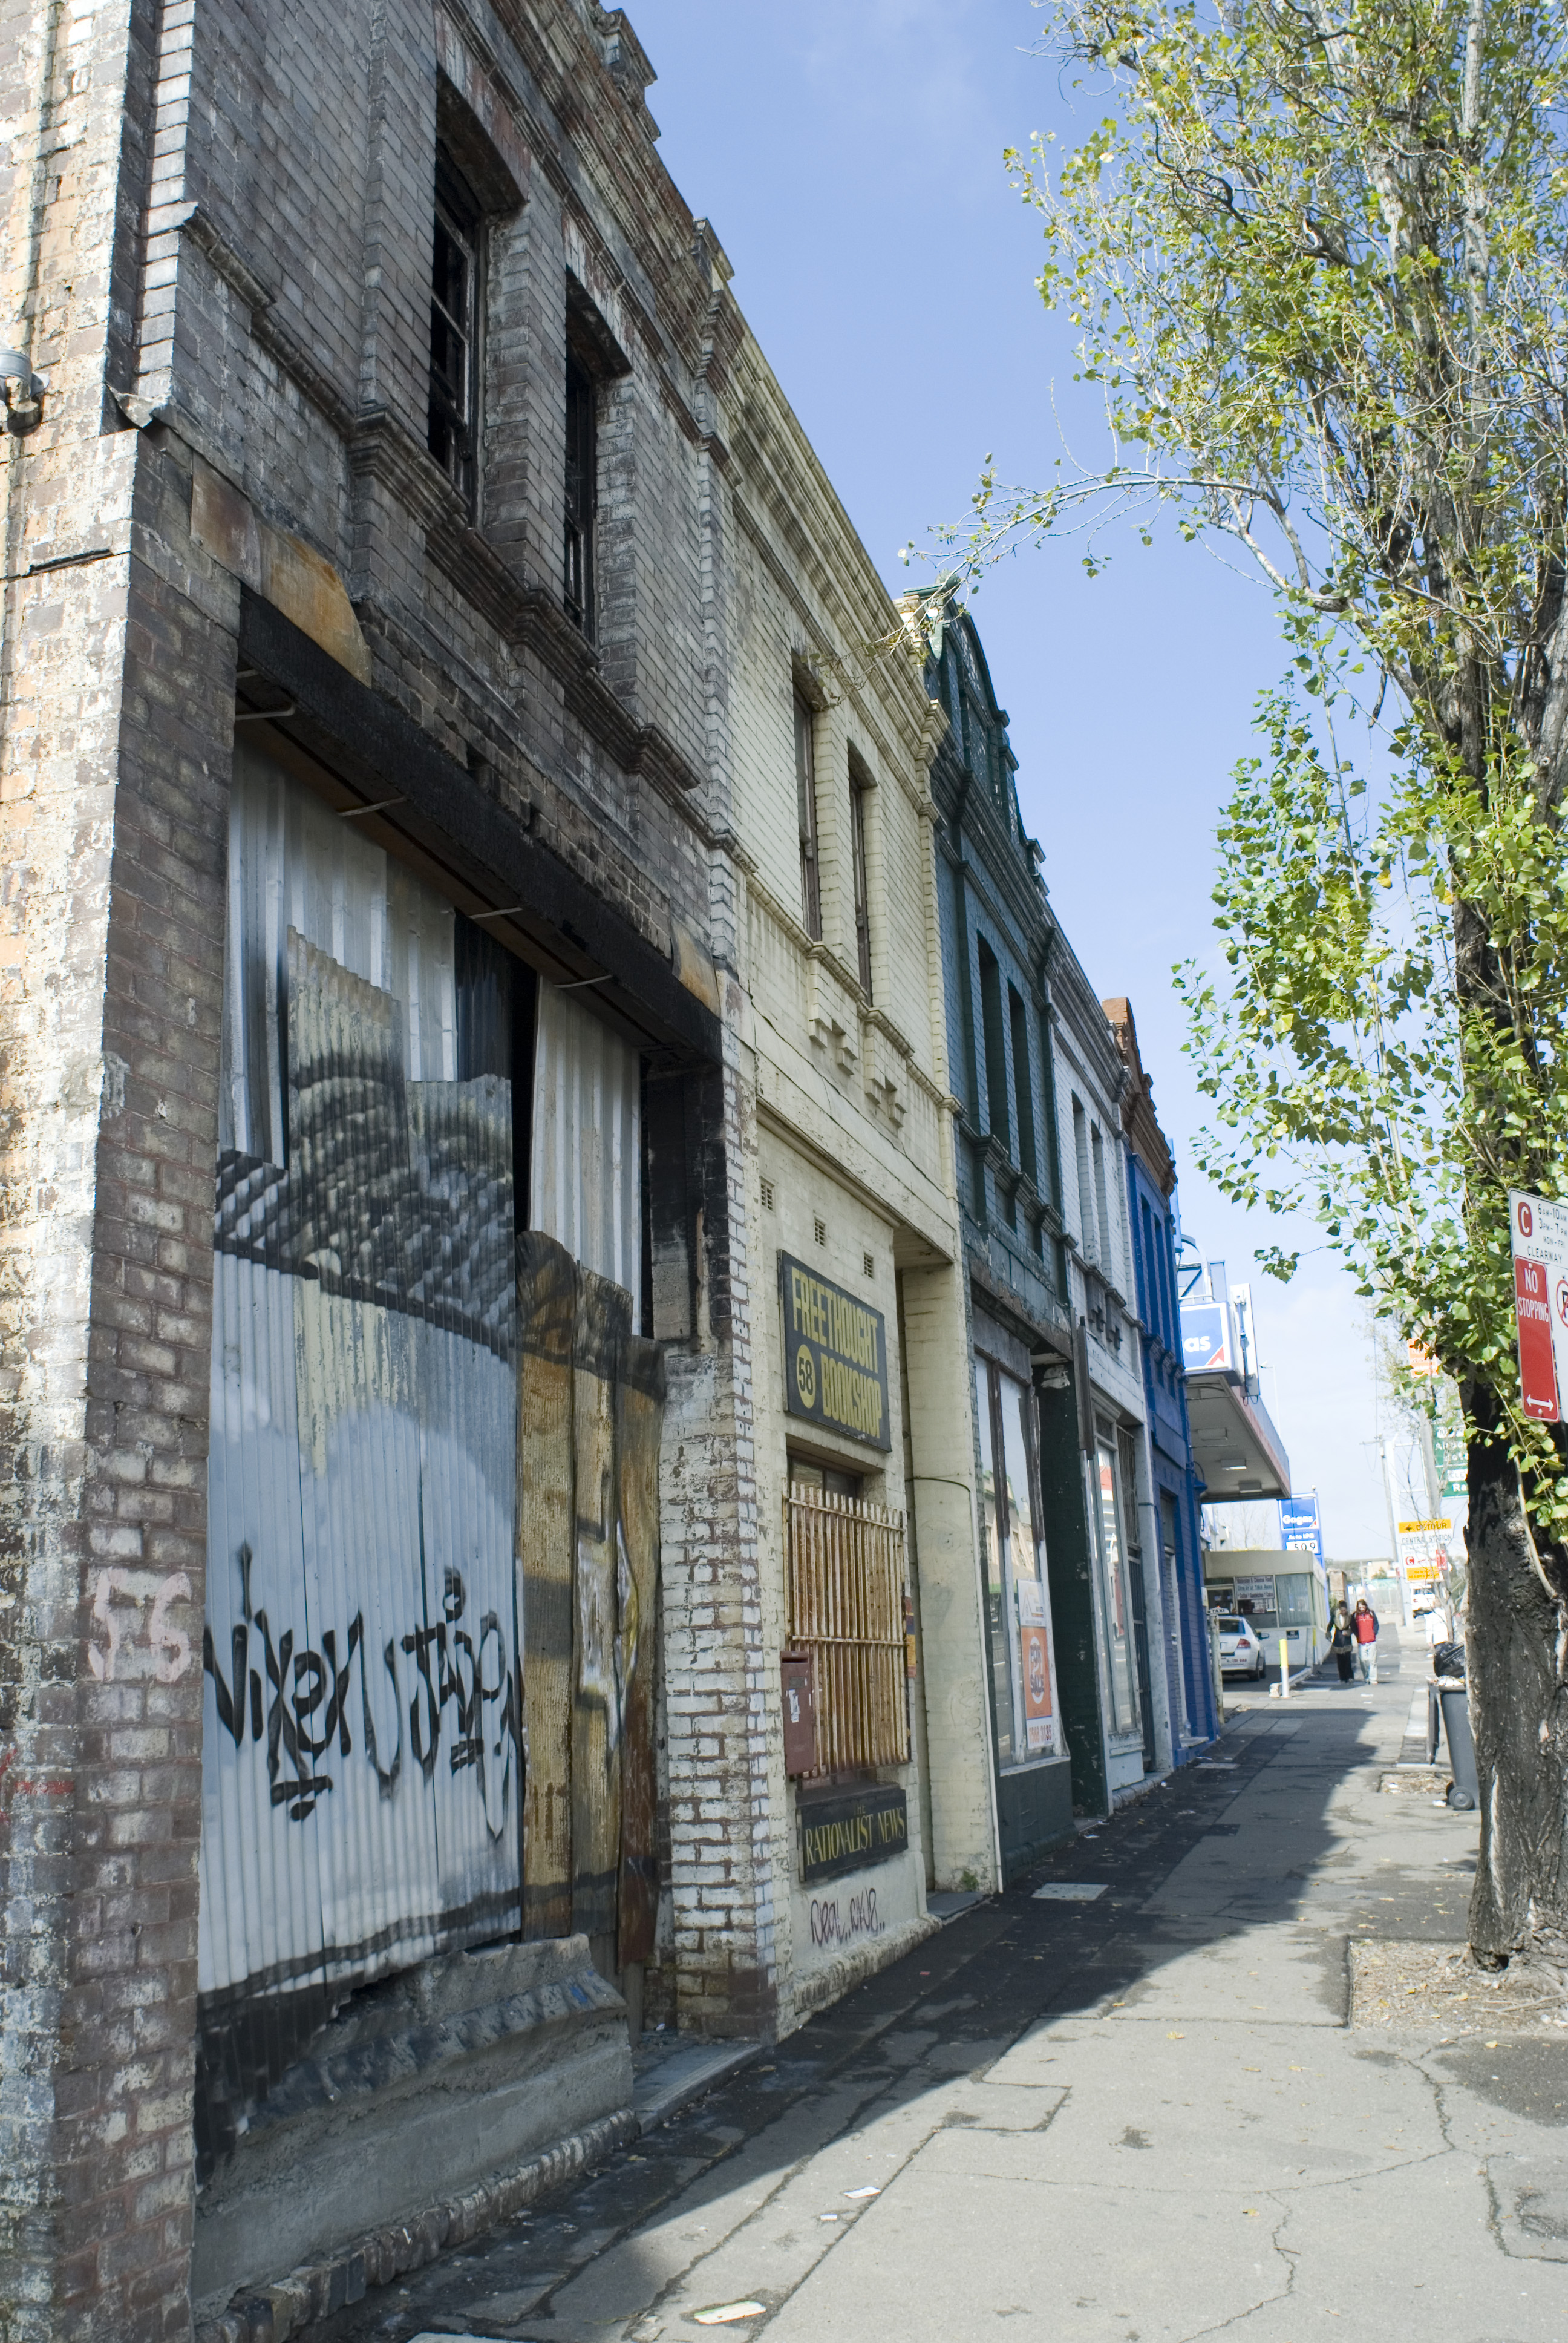 a grungy urban street scene, row of derelict buildings borded up and vandalised